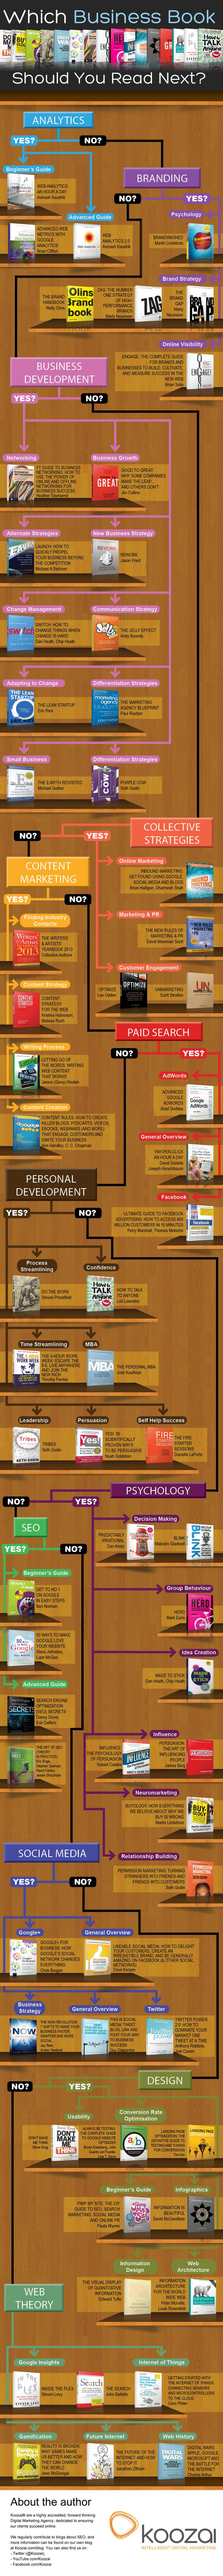 Uncategorized small business ideas small businesses ehow home business ideas to startsmall business ideas bad good ugly ideas - Best Business Books To Read 12 Types Of Ebooks To Use For Growing Your Business